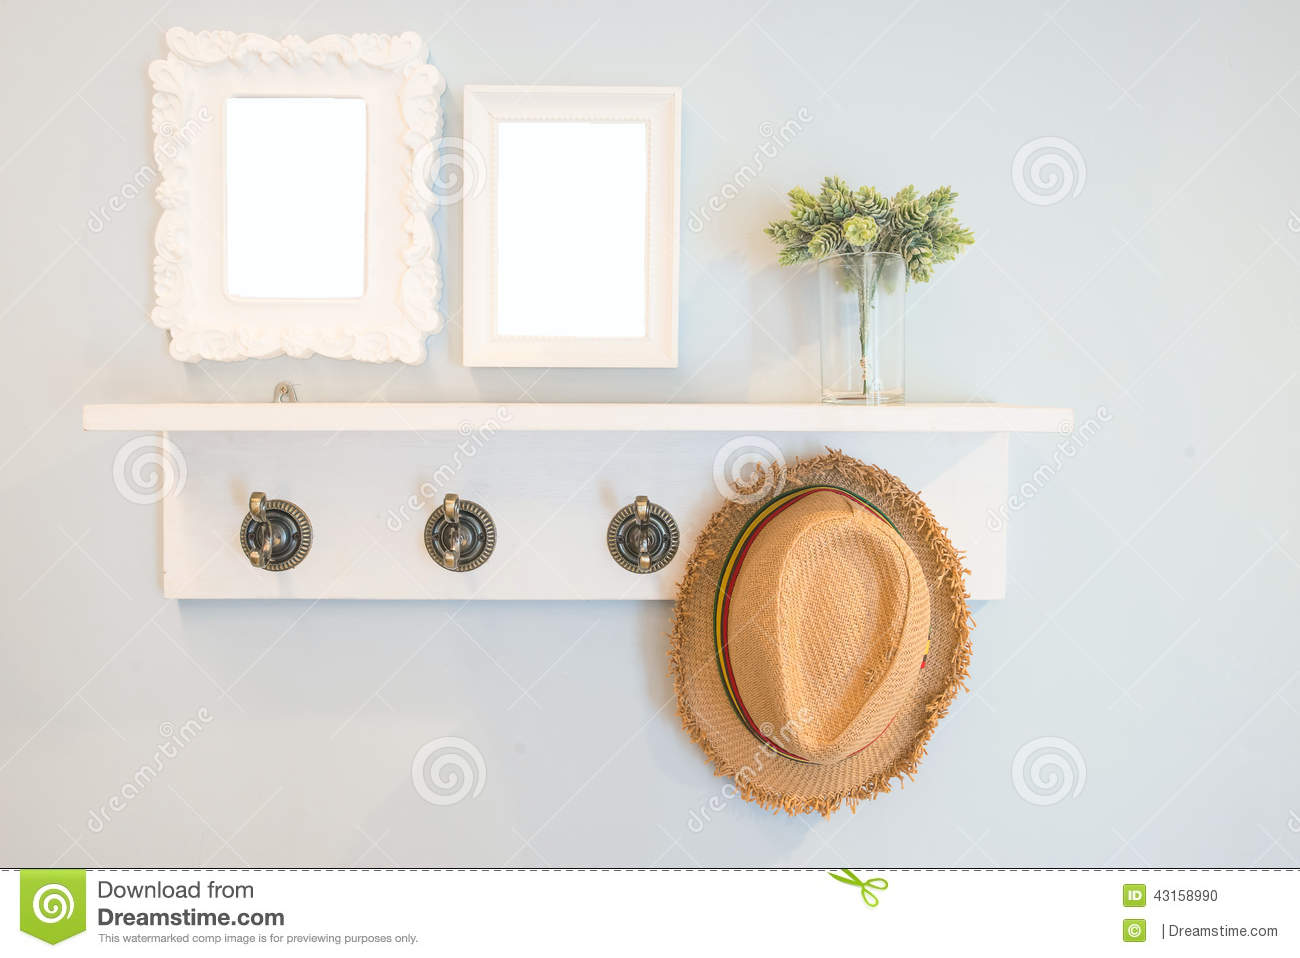 Hat hang on the wall with picture frames stock photo image of hat hang on the wall with picture frames jeuxipadfo Images